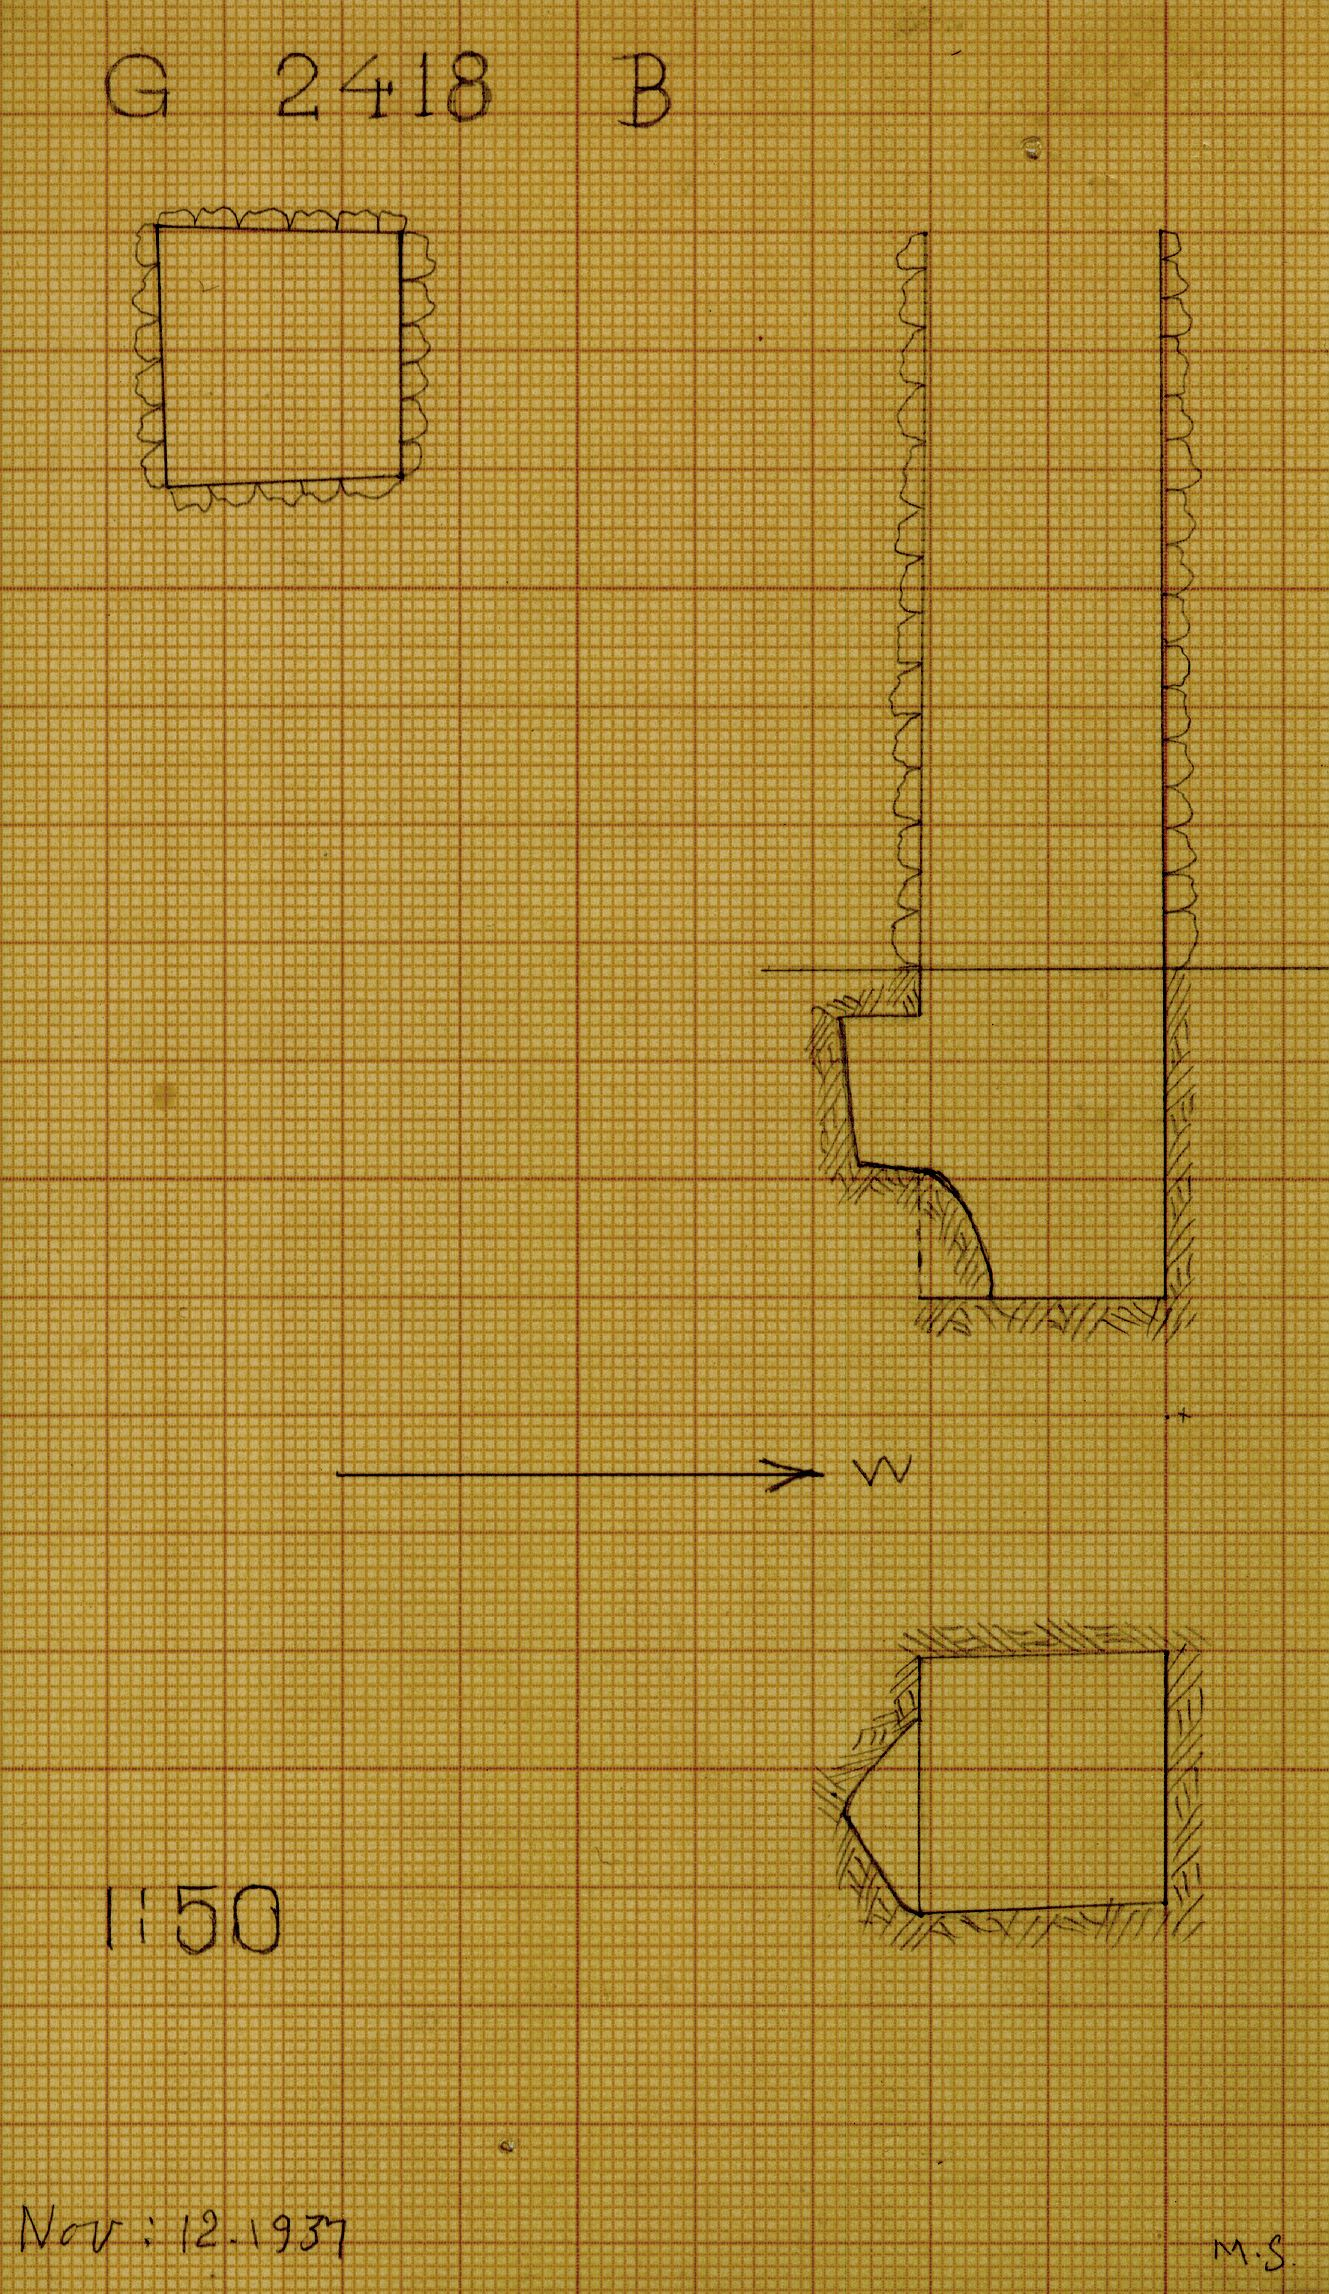 Maps and plans: G 2418, Shaft B